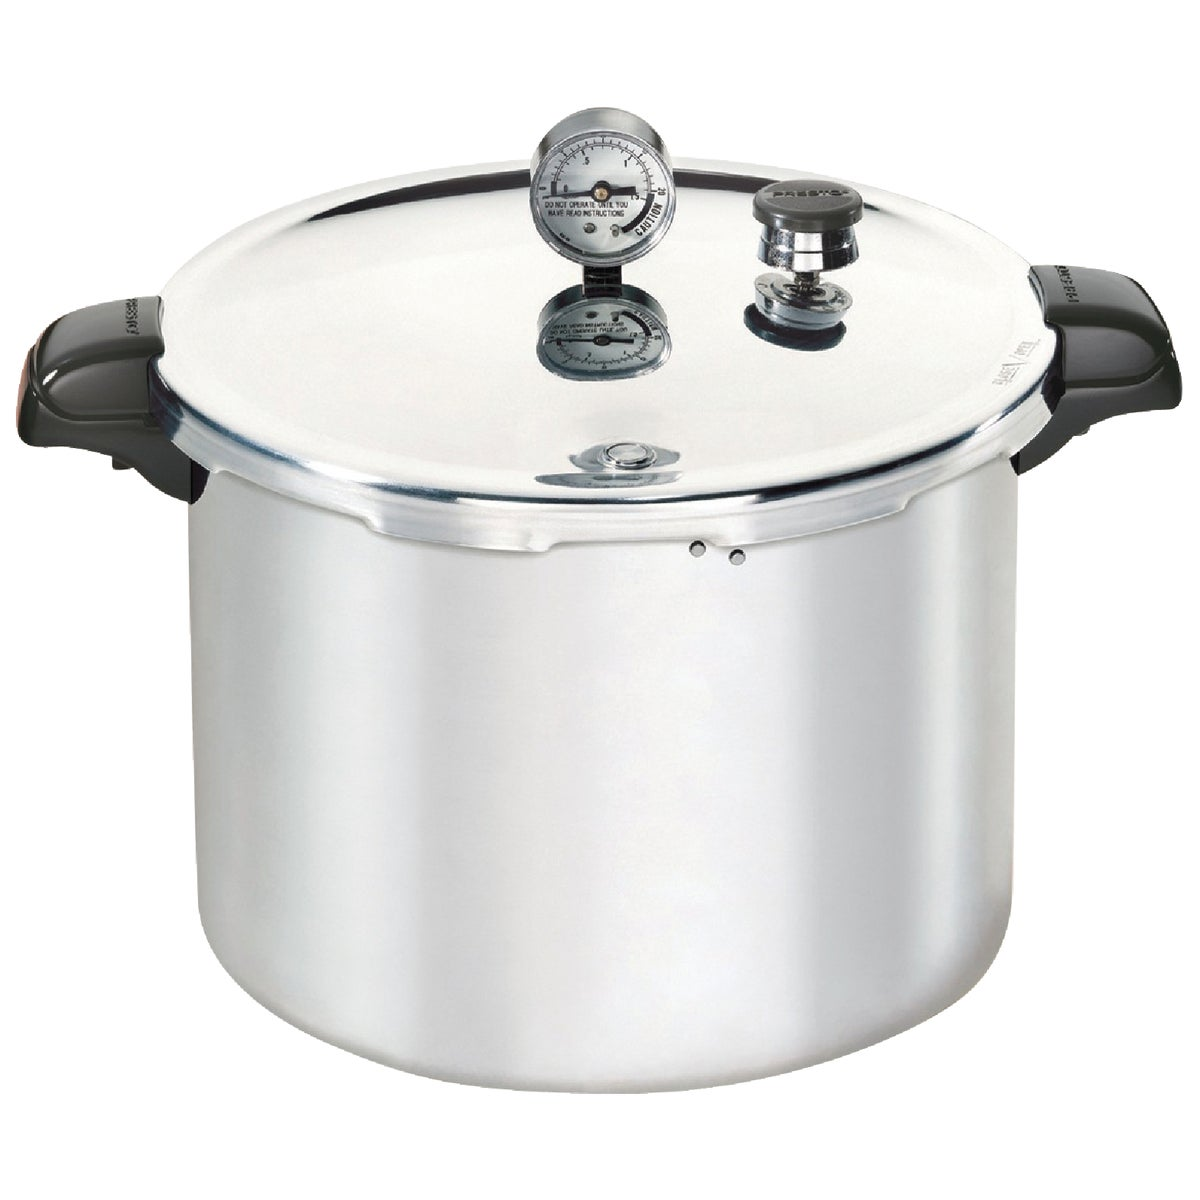 16QT PRESR COOKER/CANNER - 01755 by National Presto Ind